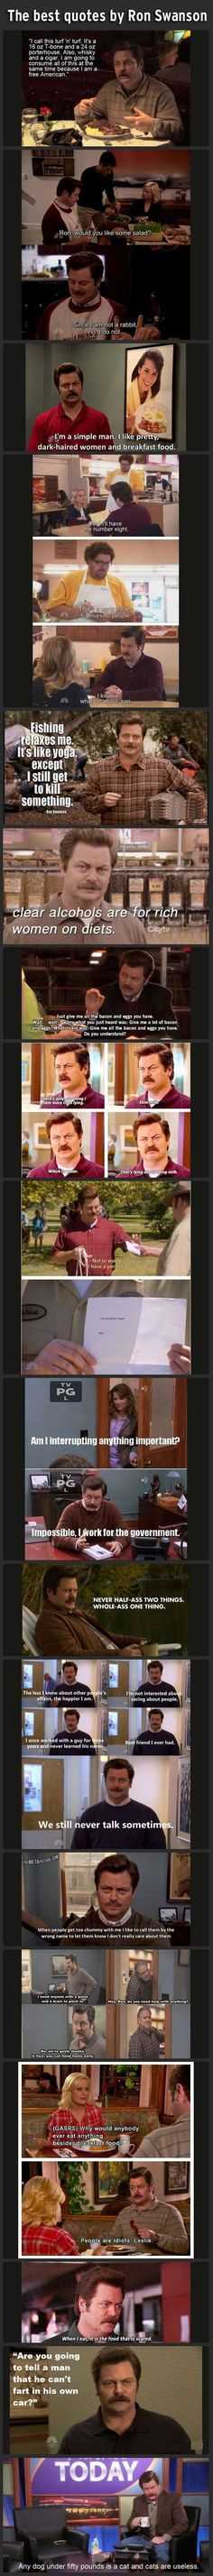 Ron Swanson is a Real American Hero, it is just as simple as that.